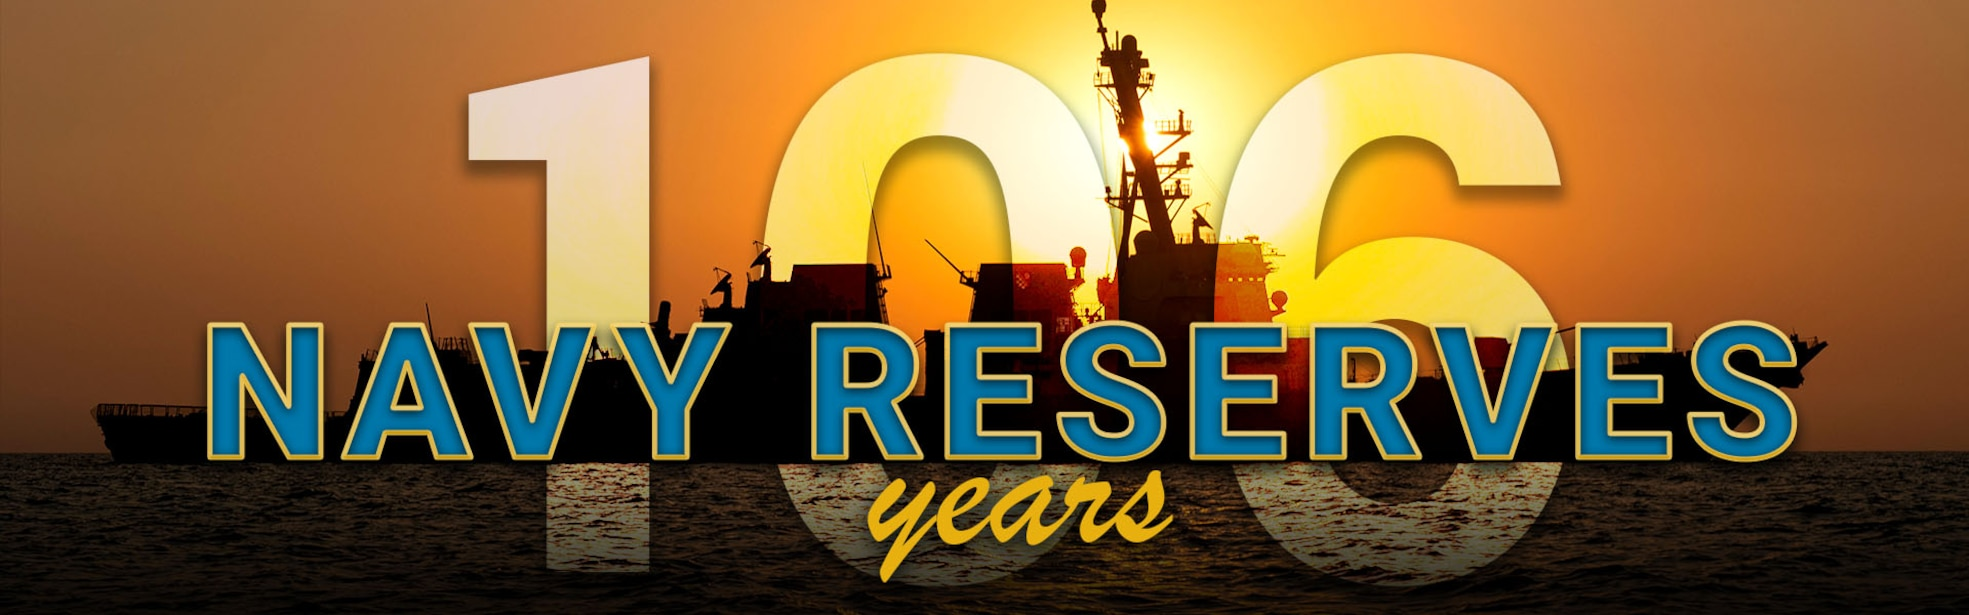 Navy Reserve 106 Years